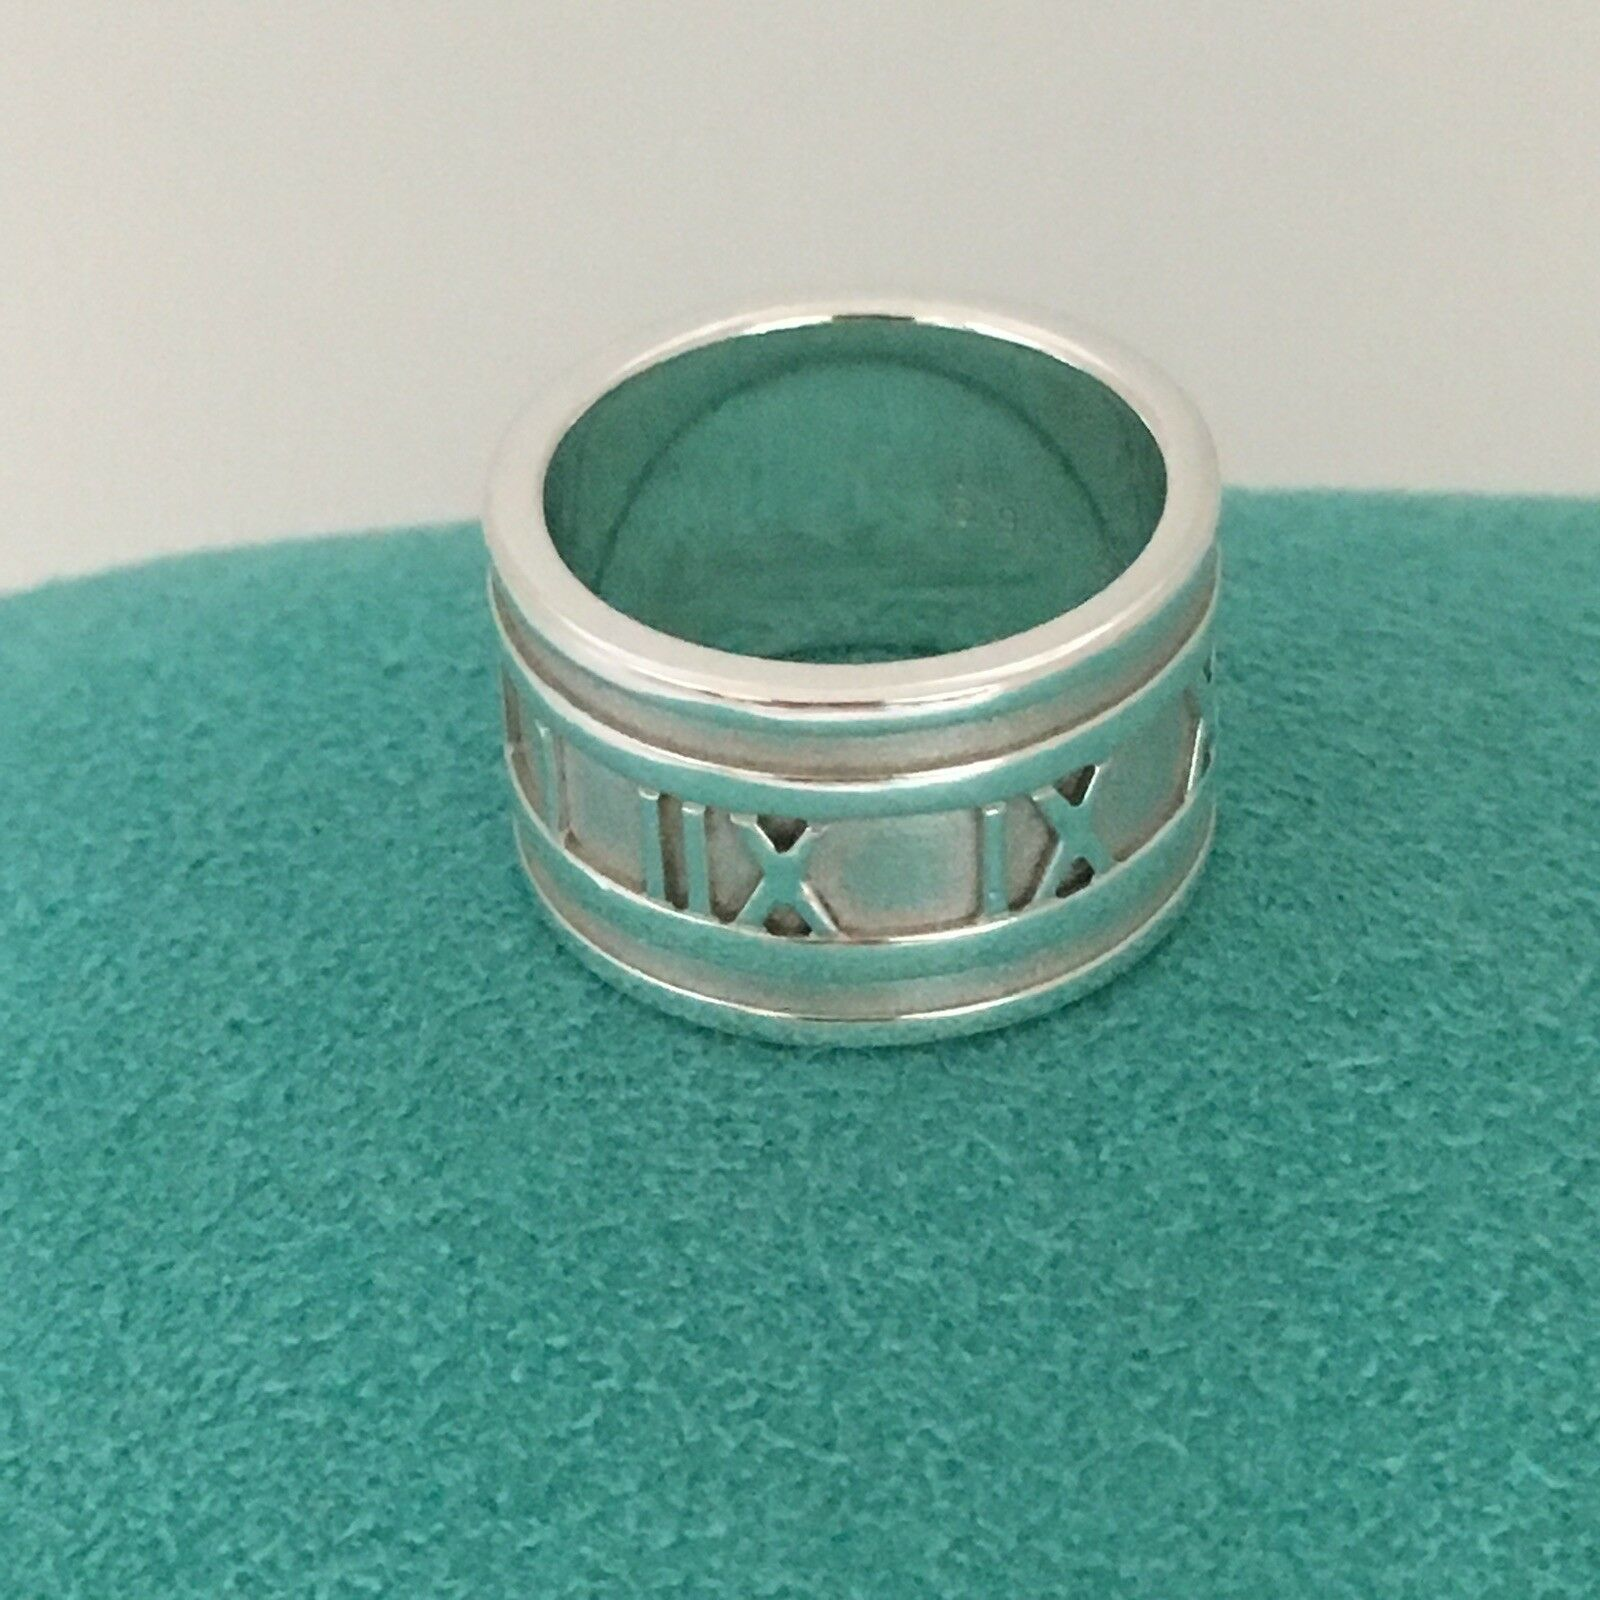 bee422f94 Size 5 Tiffany & Co Men's Unisex Atlas Ring Roman Numerals Wide Band Ring